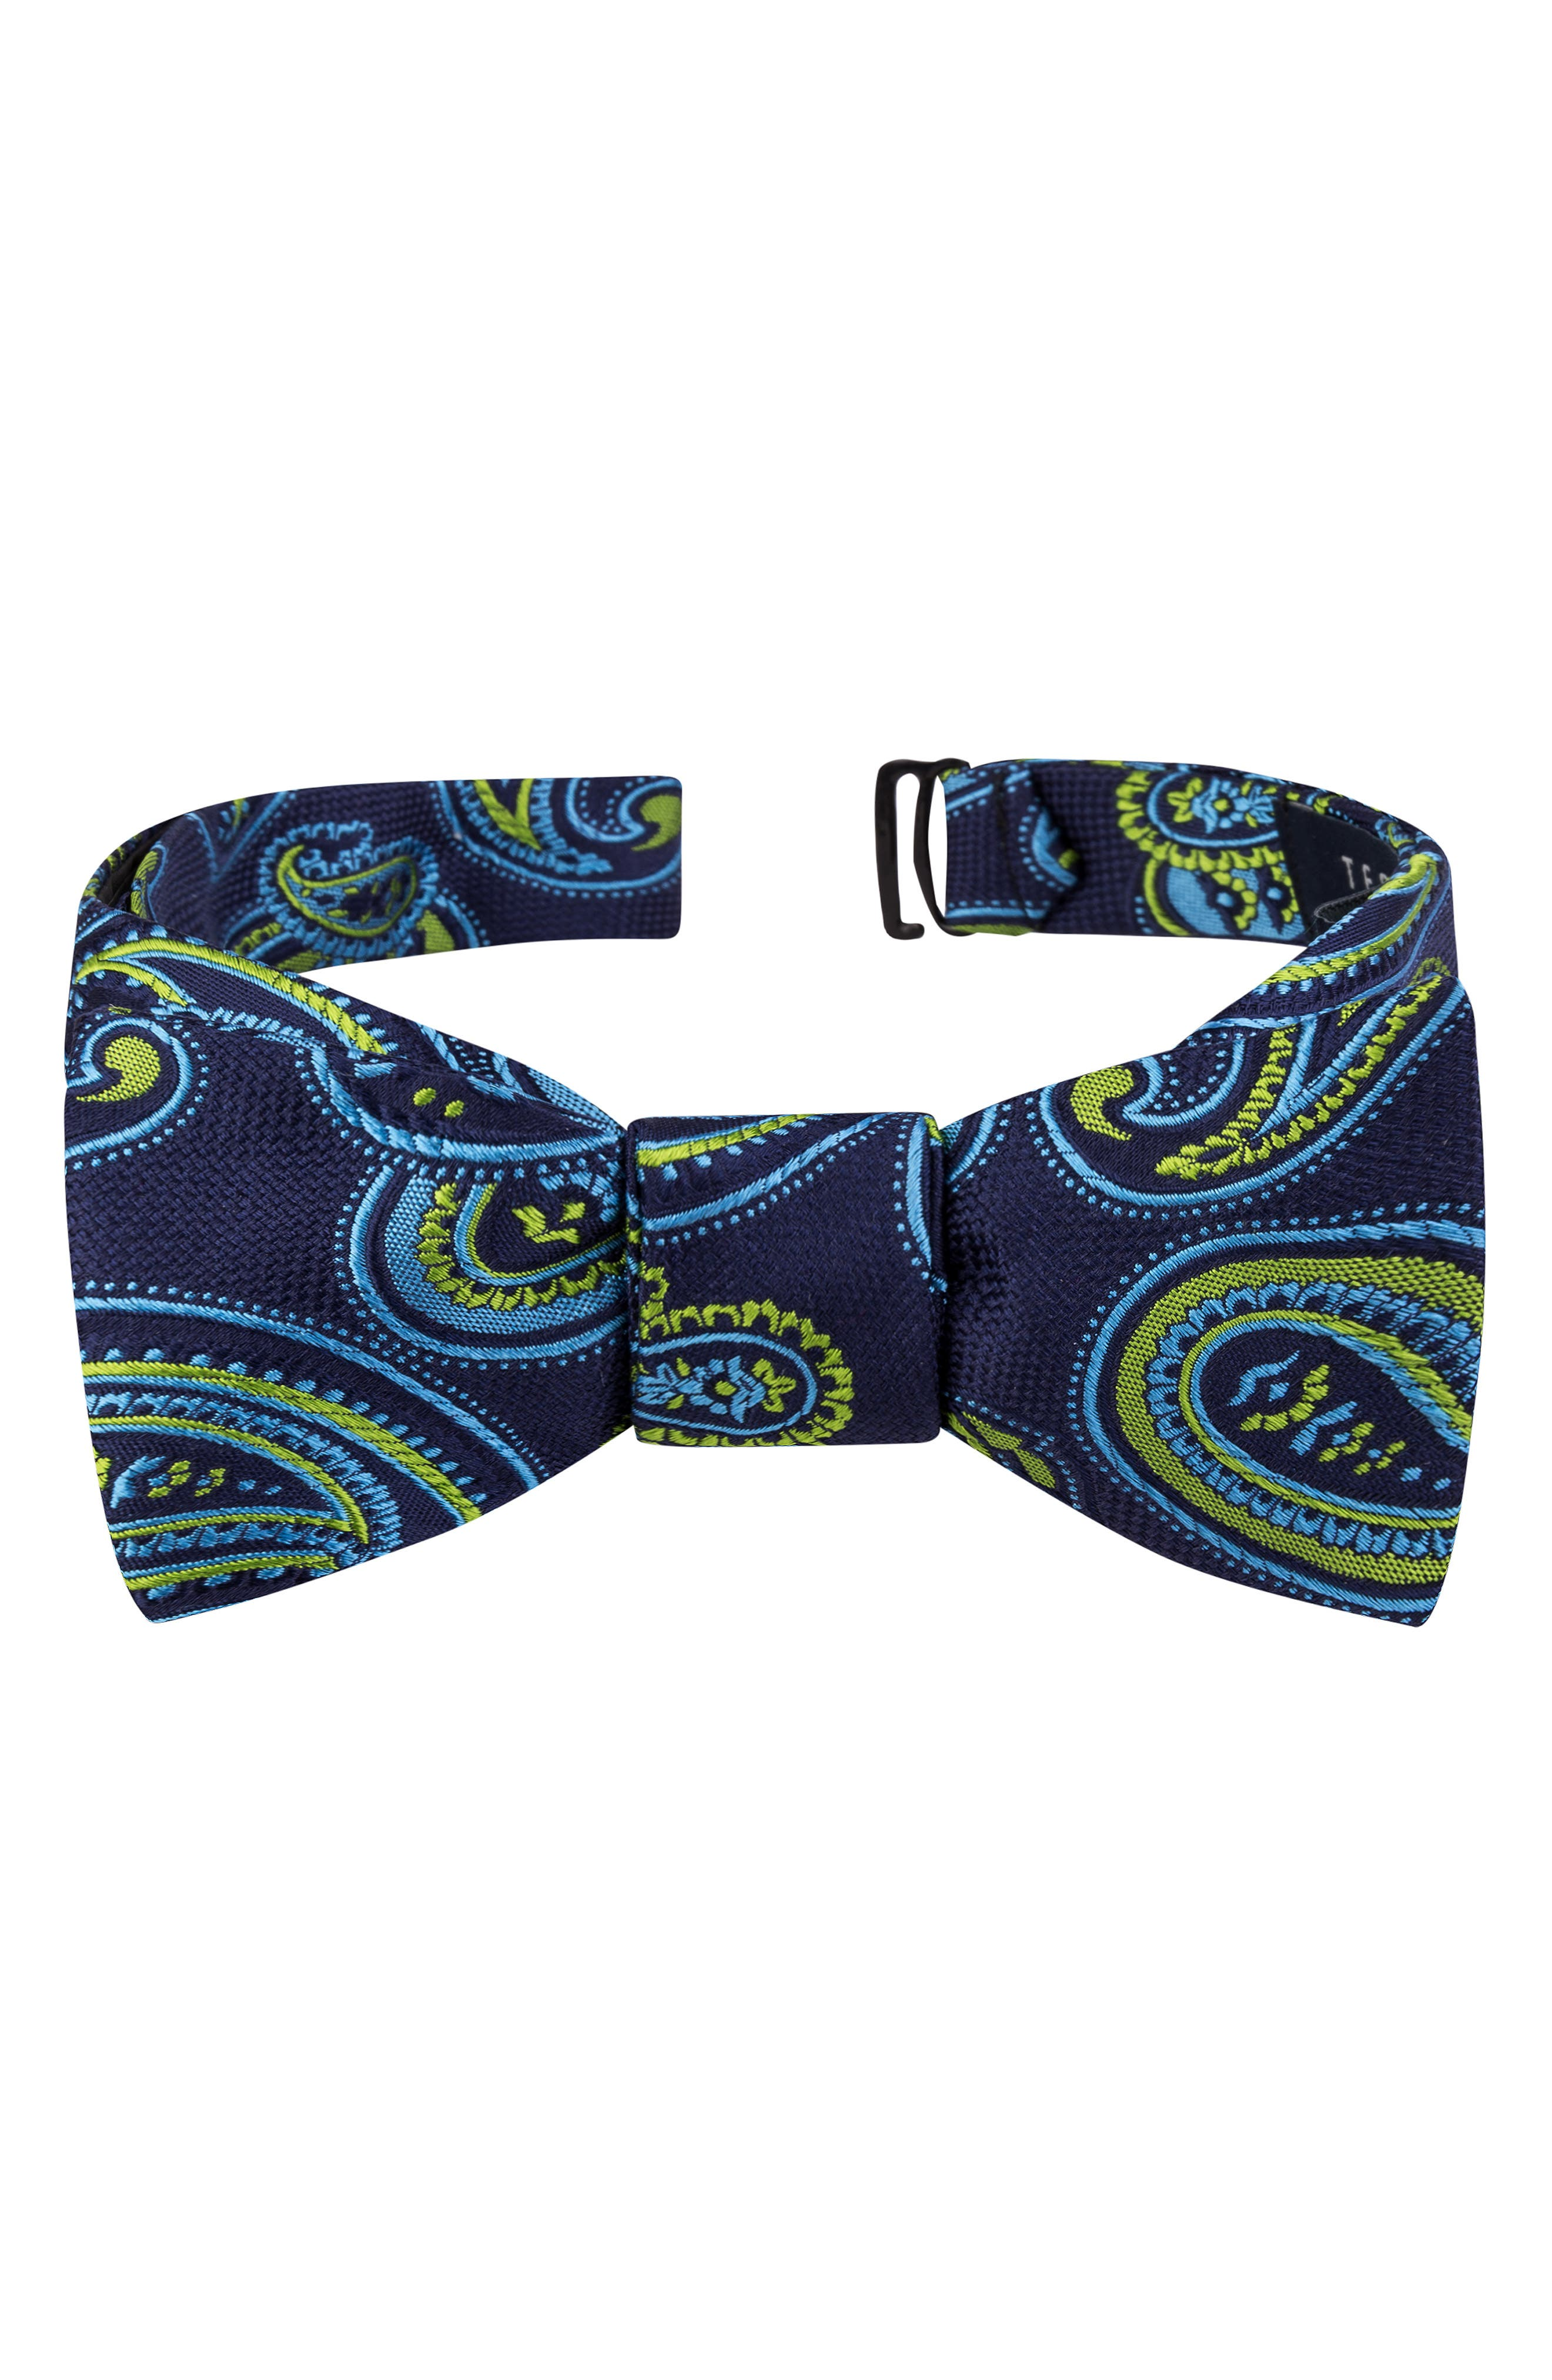 Edwardian Men's Fashion & Clothing Mens Ted Baker London Twin Pine Silk Bow Tie $59.50 AT vintagedancer.com